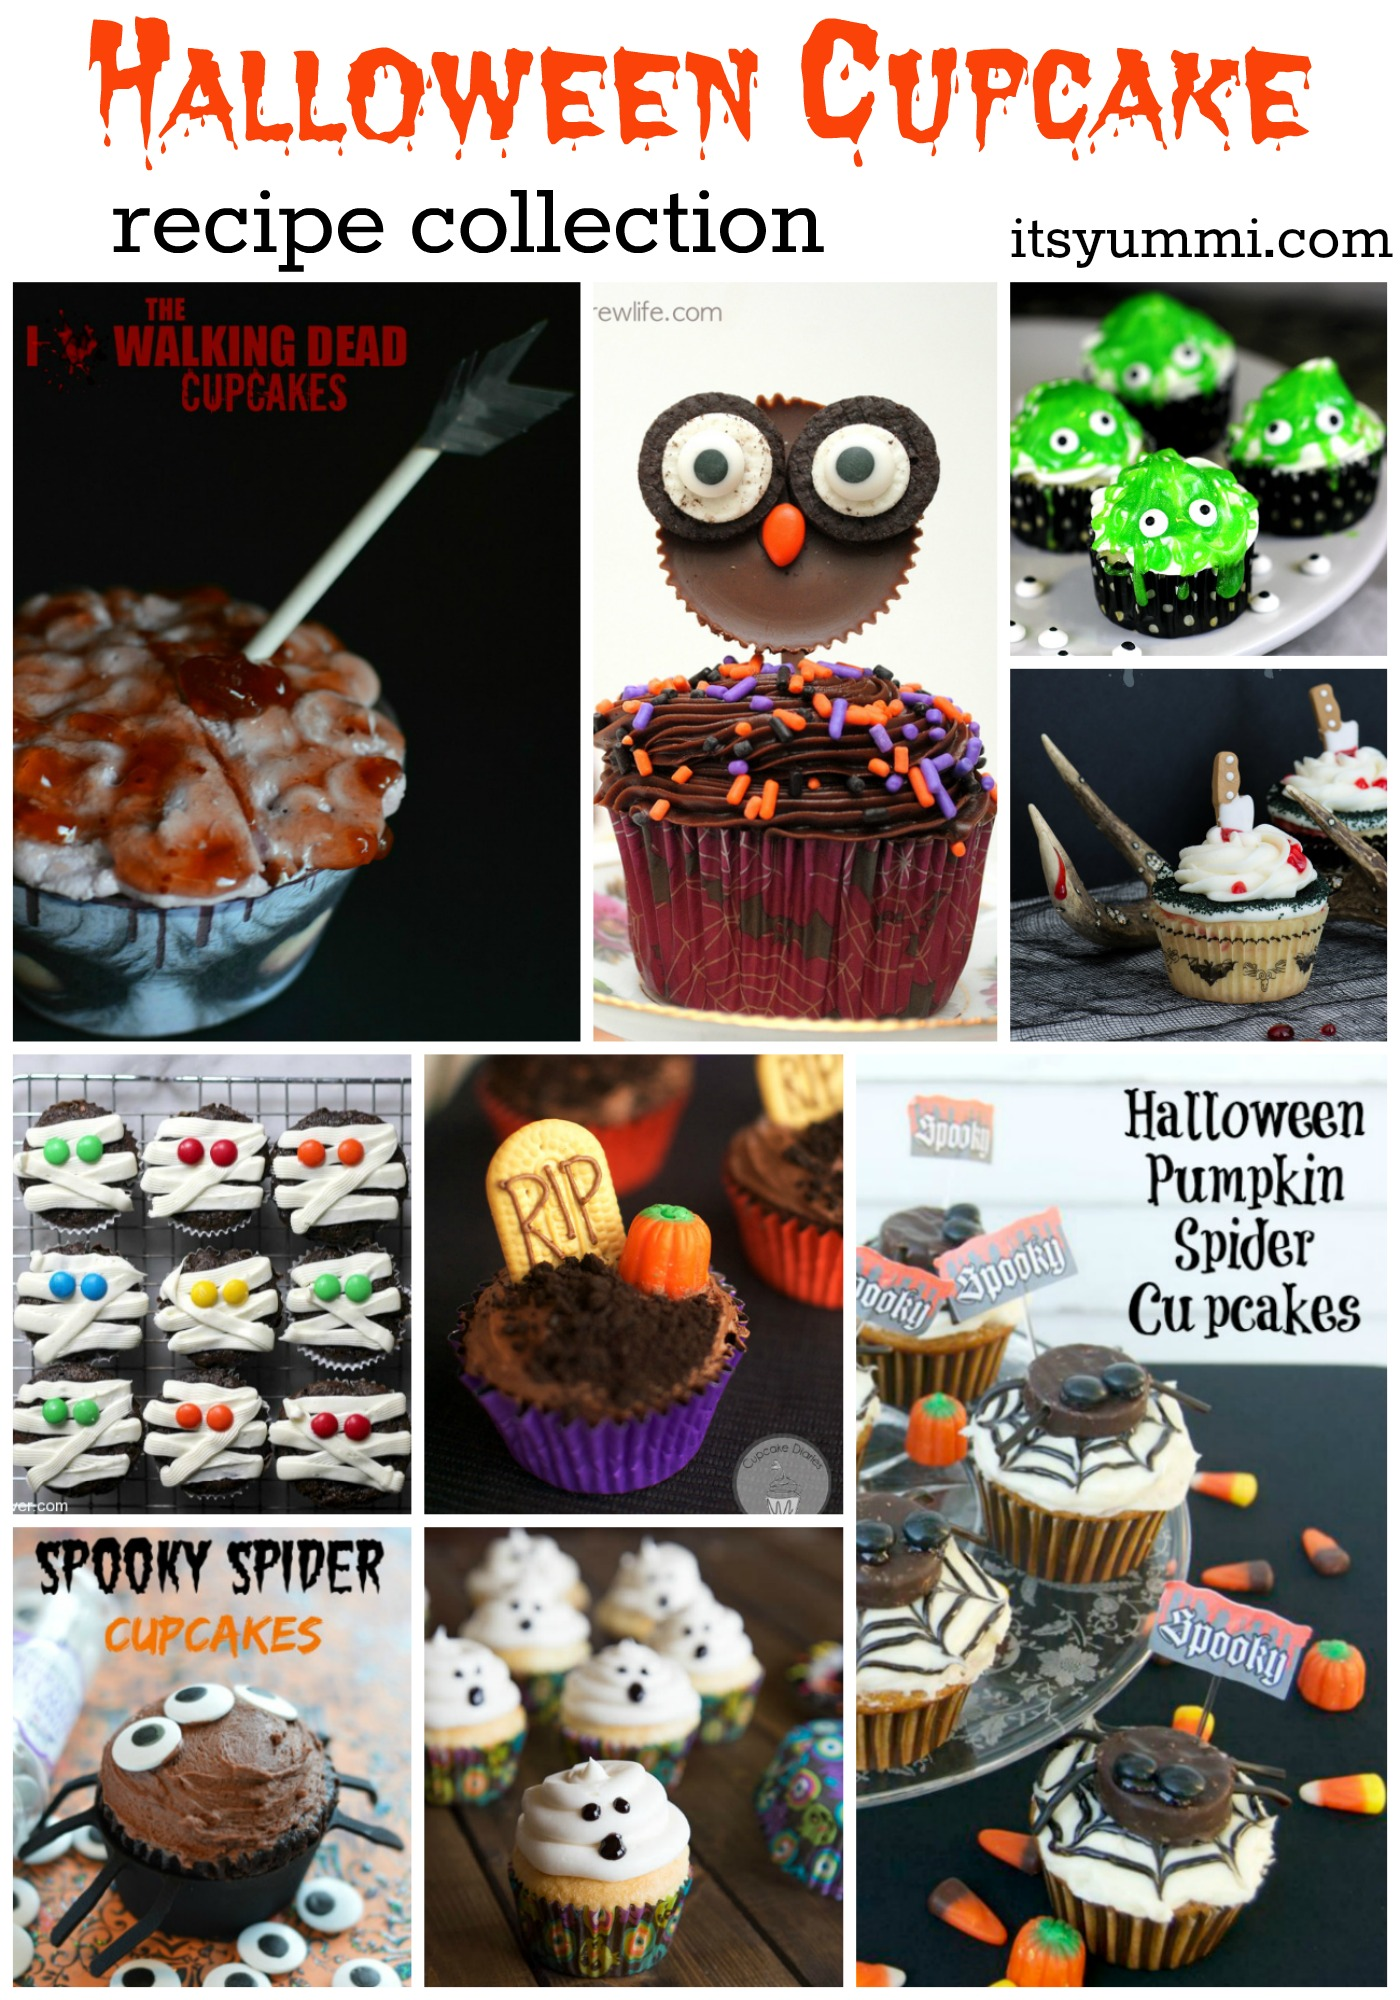 Fun Halloween Cupcake Recipe Roundup- from ItsYummi.com